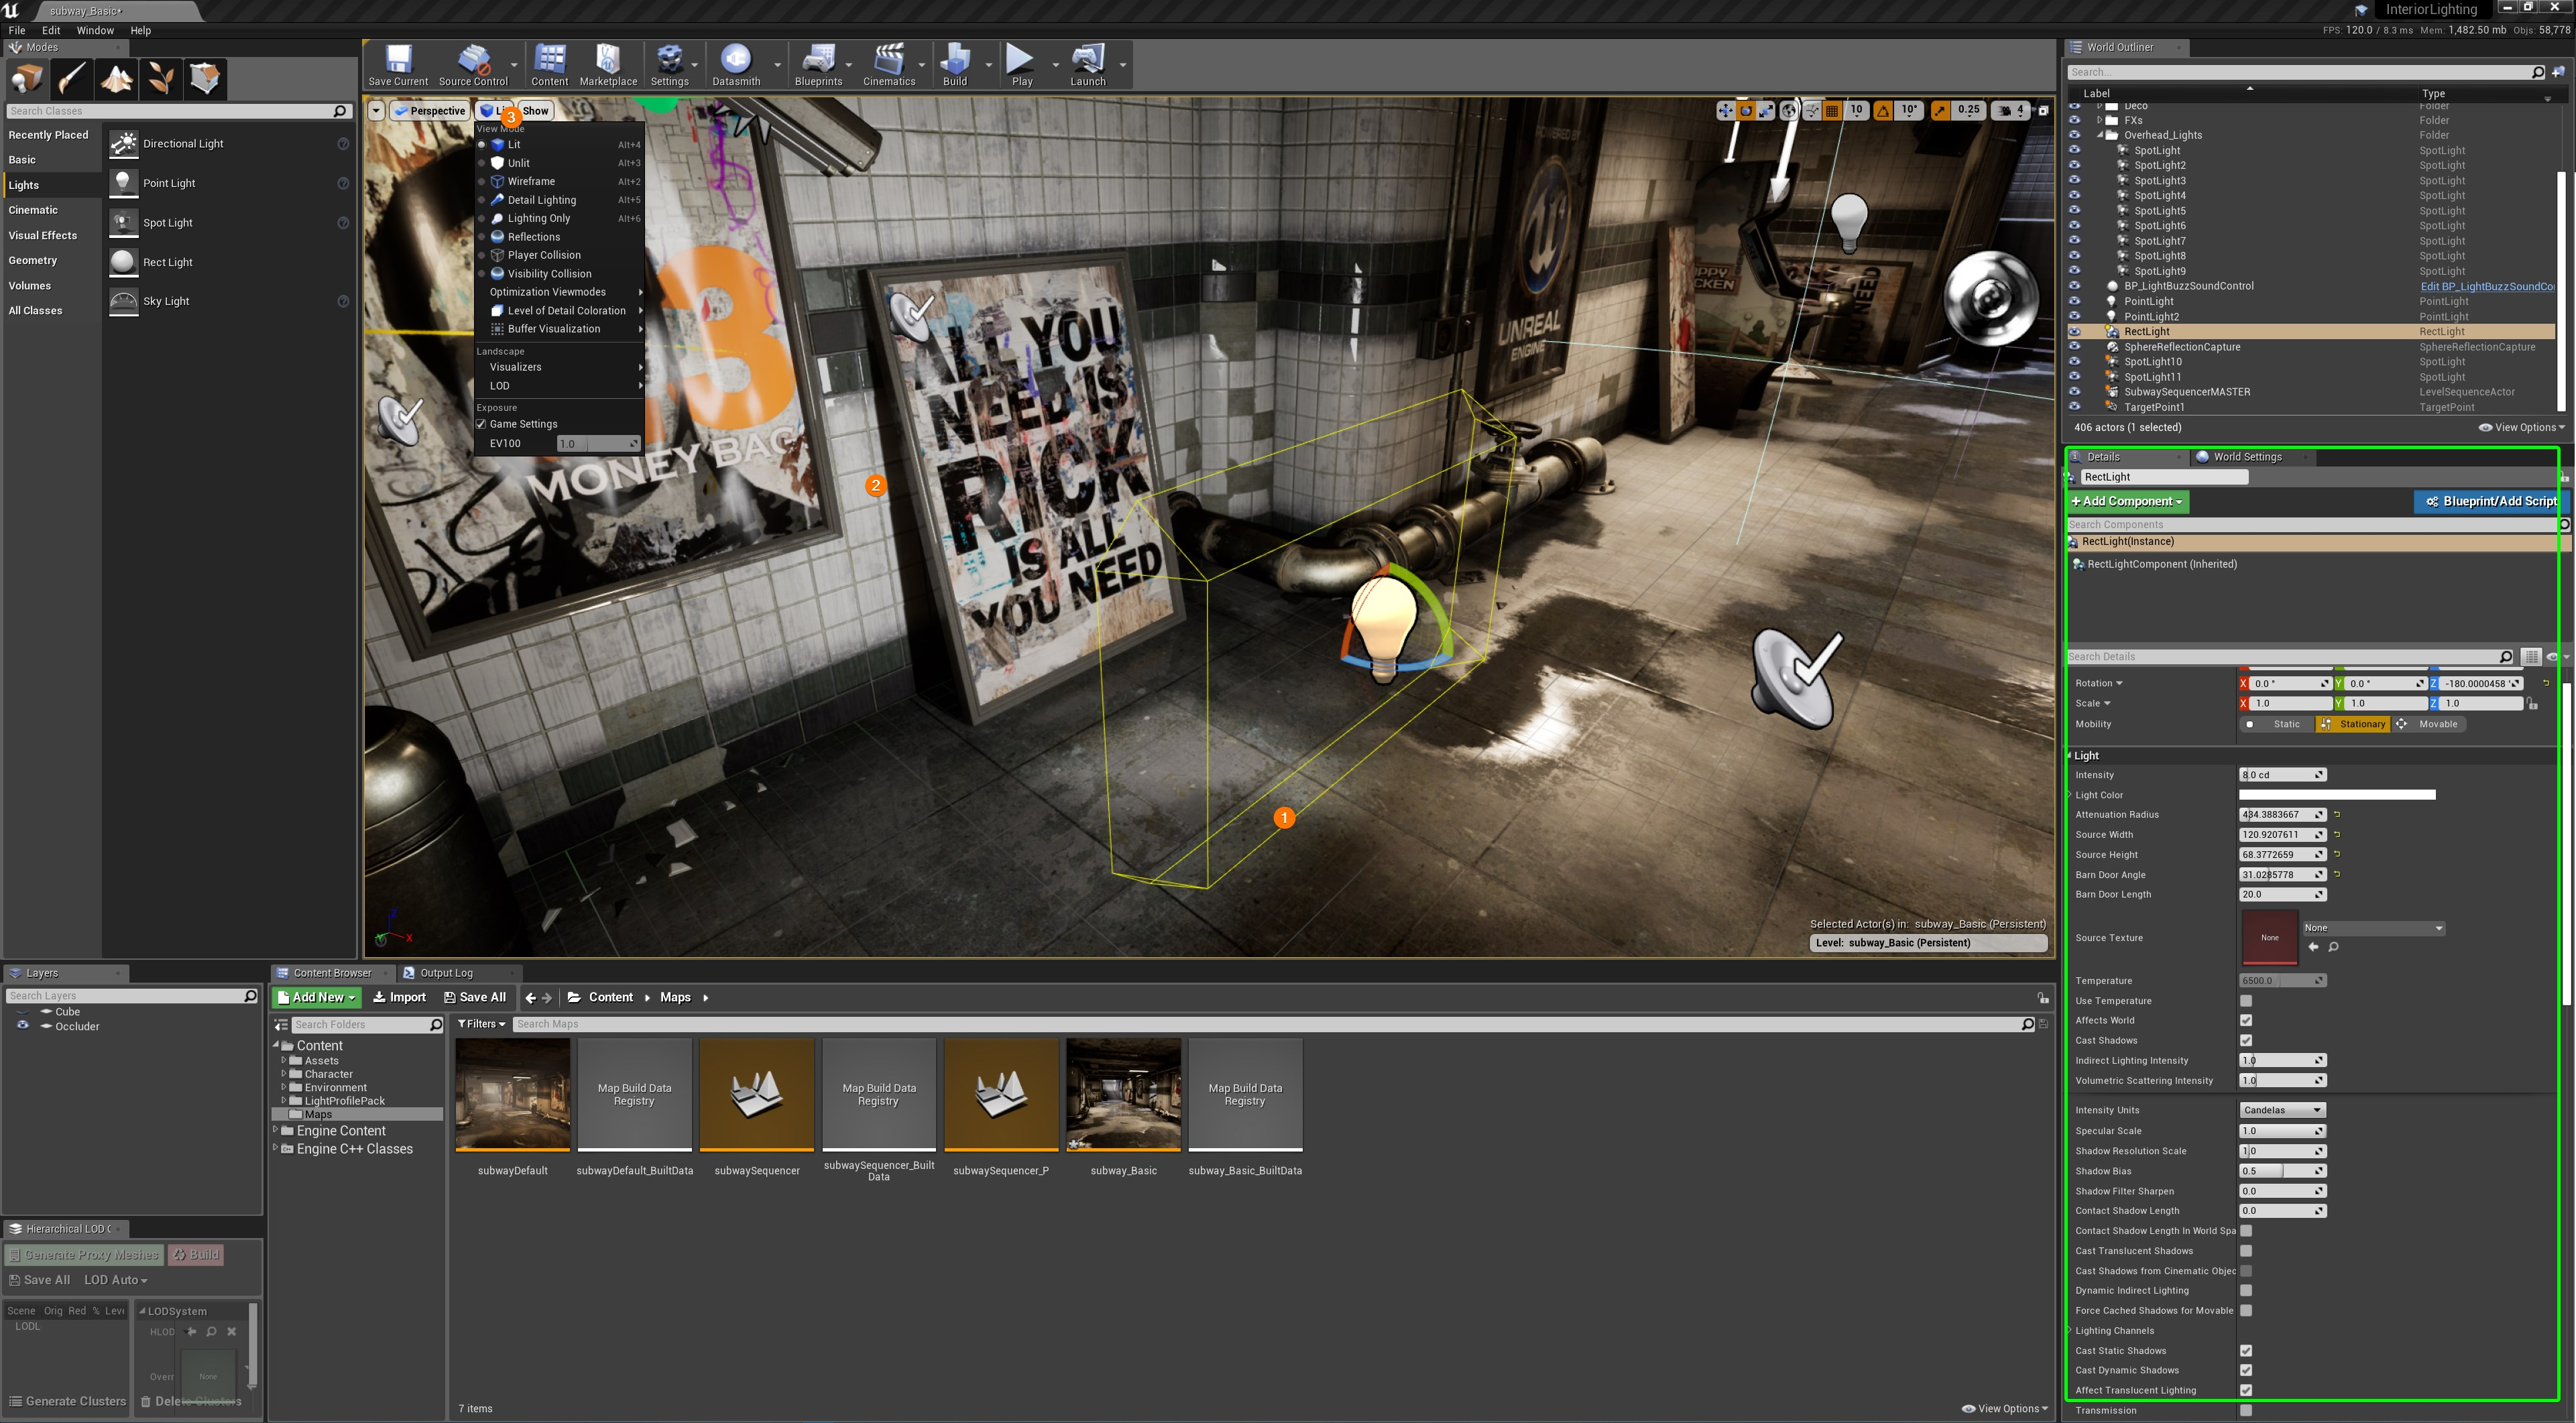 RTX Enabled but No Raytracing - UE4 AnswerHub